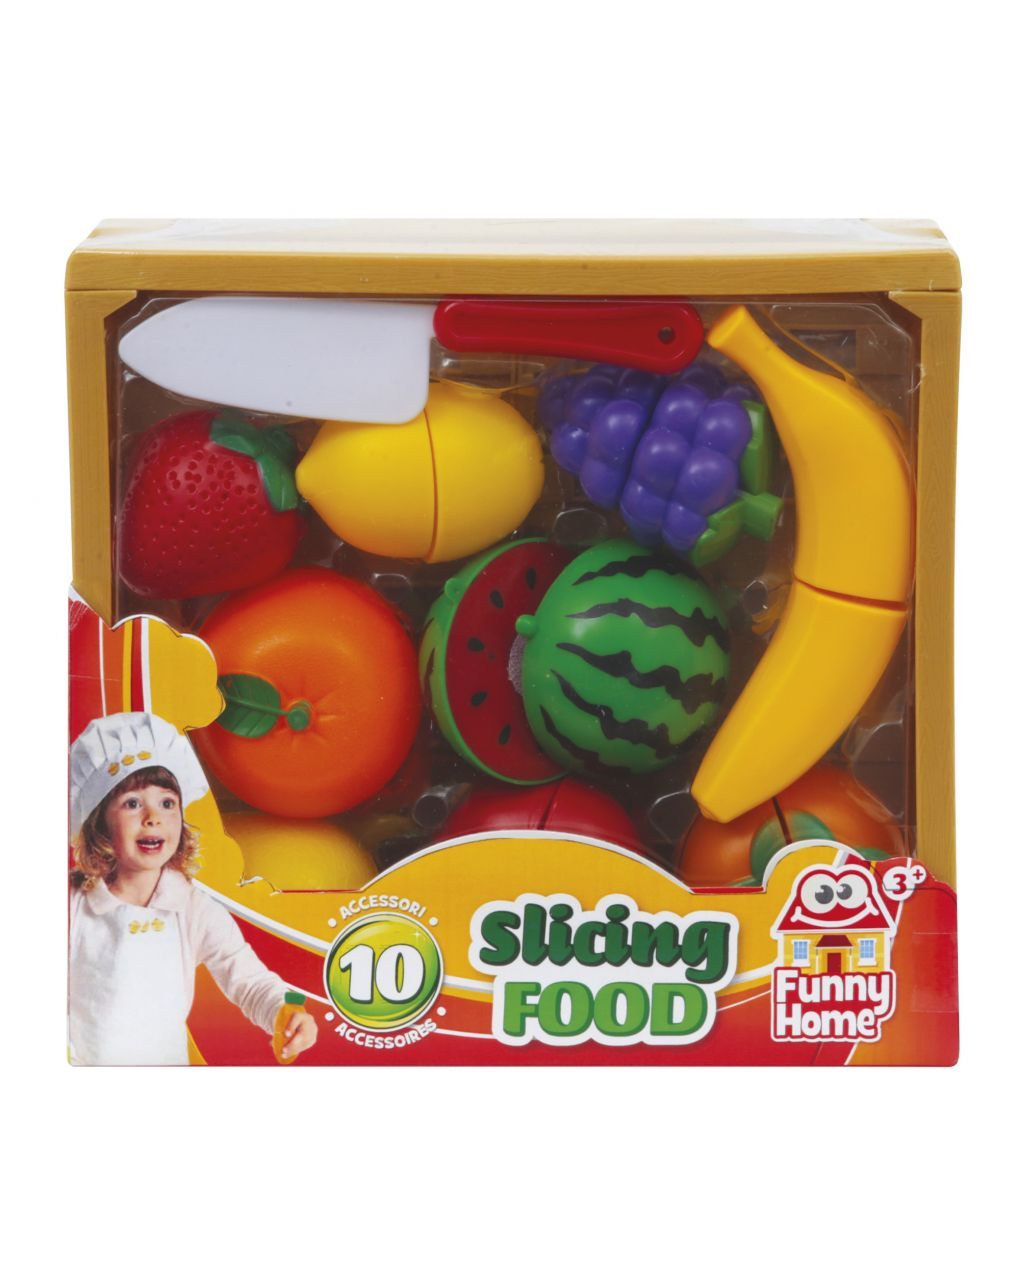 Funny home - slicing food - FunnyHome